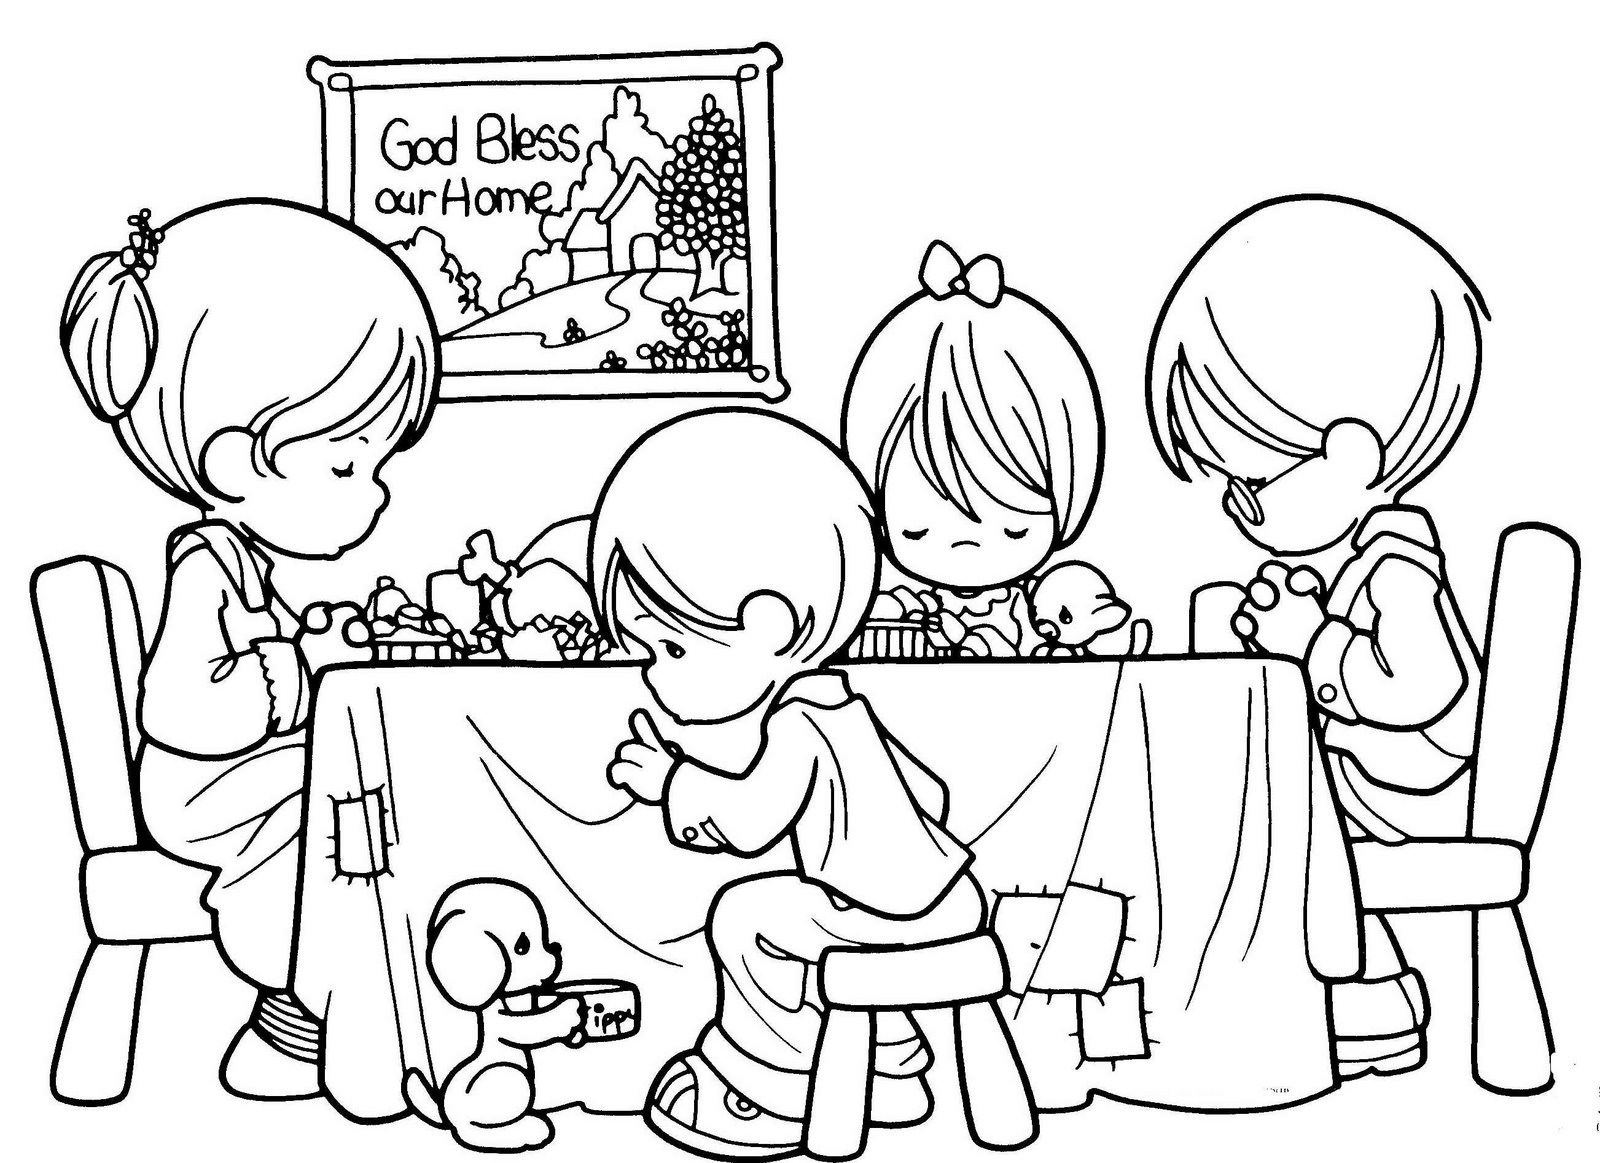 biblical coloring pages free printable christian coloring pages for kids best pages biblical coloring